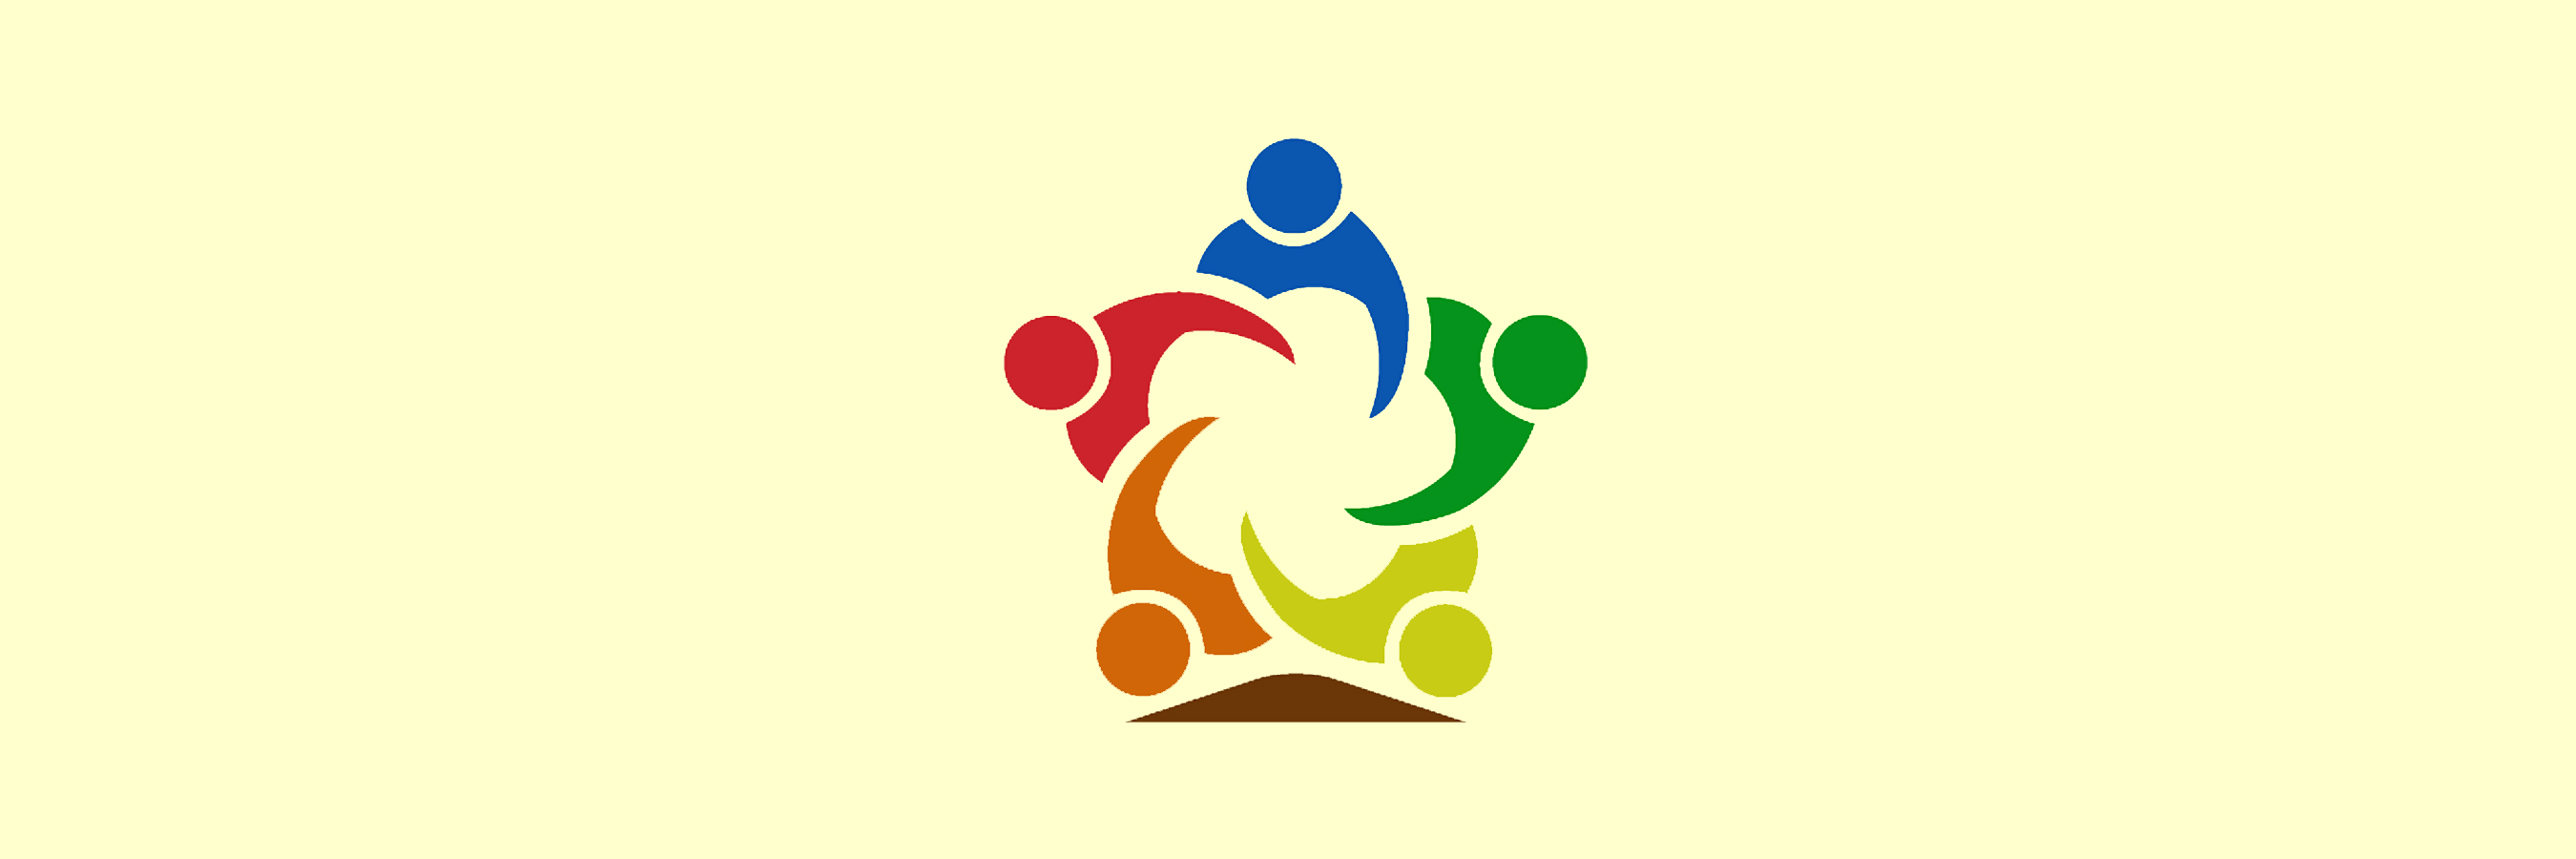 icon: 5 people (each a different rainbow color) forming a star with an arm